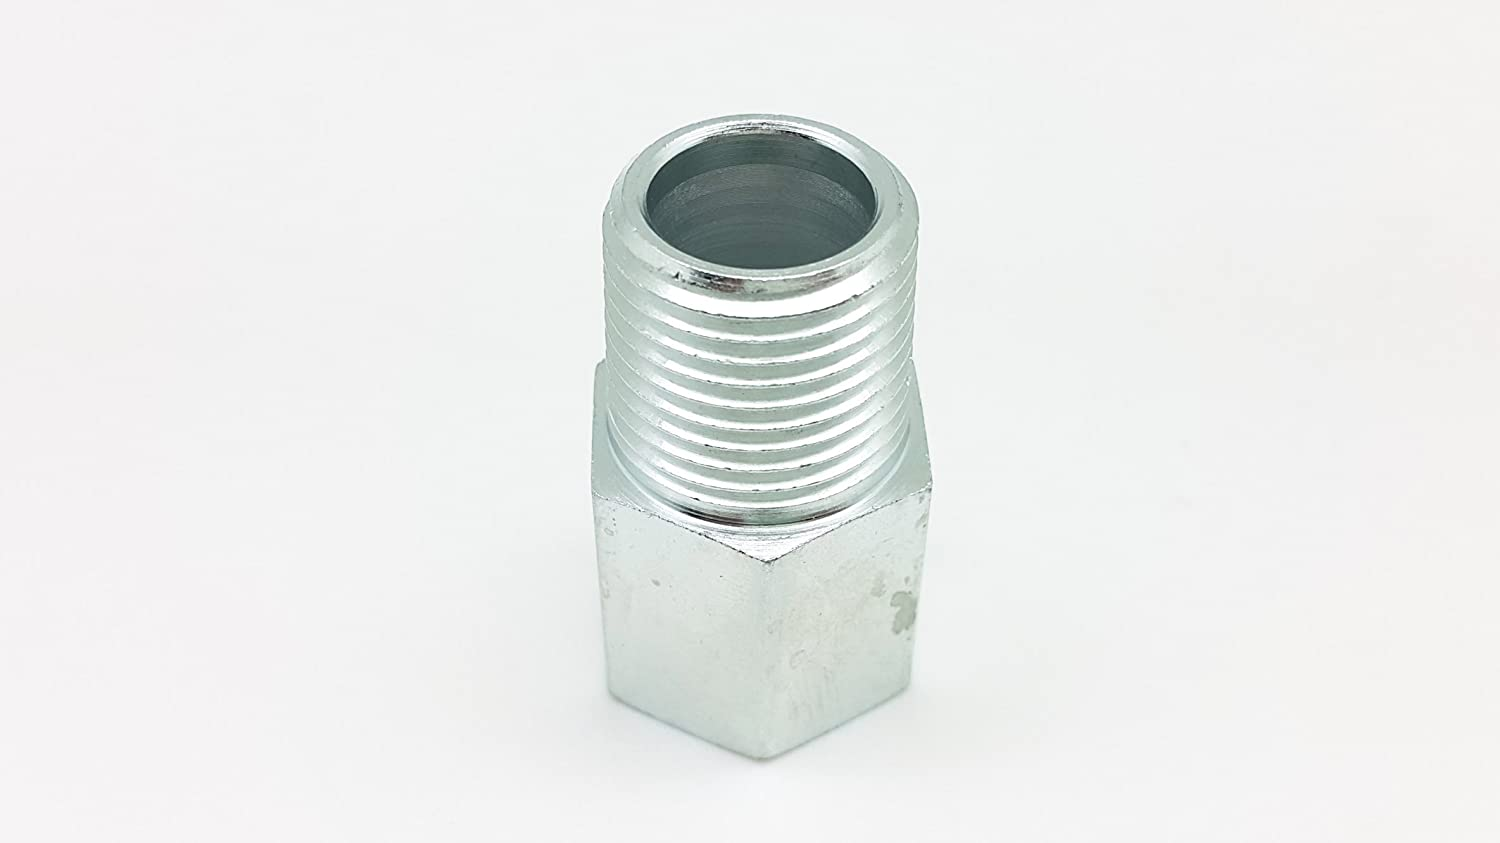 HEX 27 NPT 1//2 Male to M22x1.5 Female L=43mm Autobahn88 Steel Fitting code: FTM518 1.7 inch